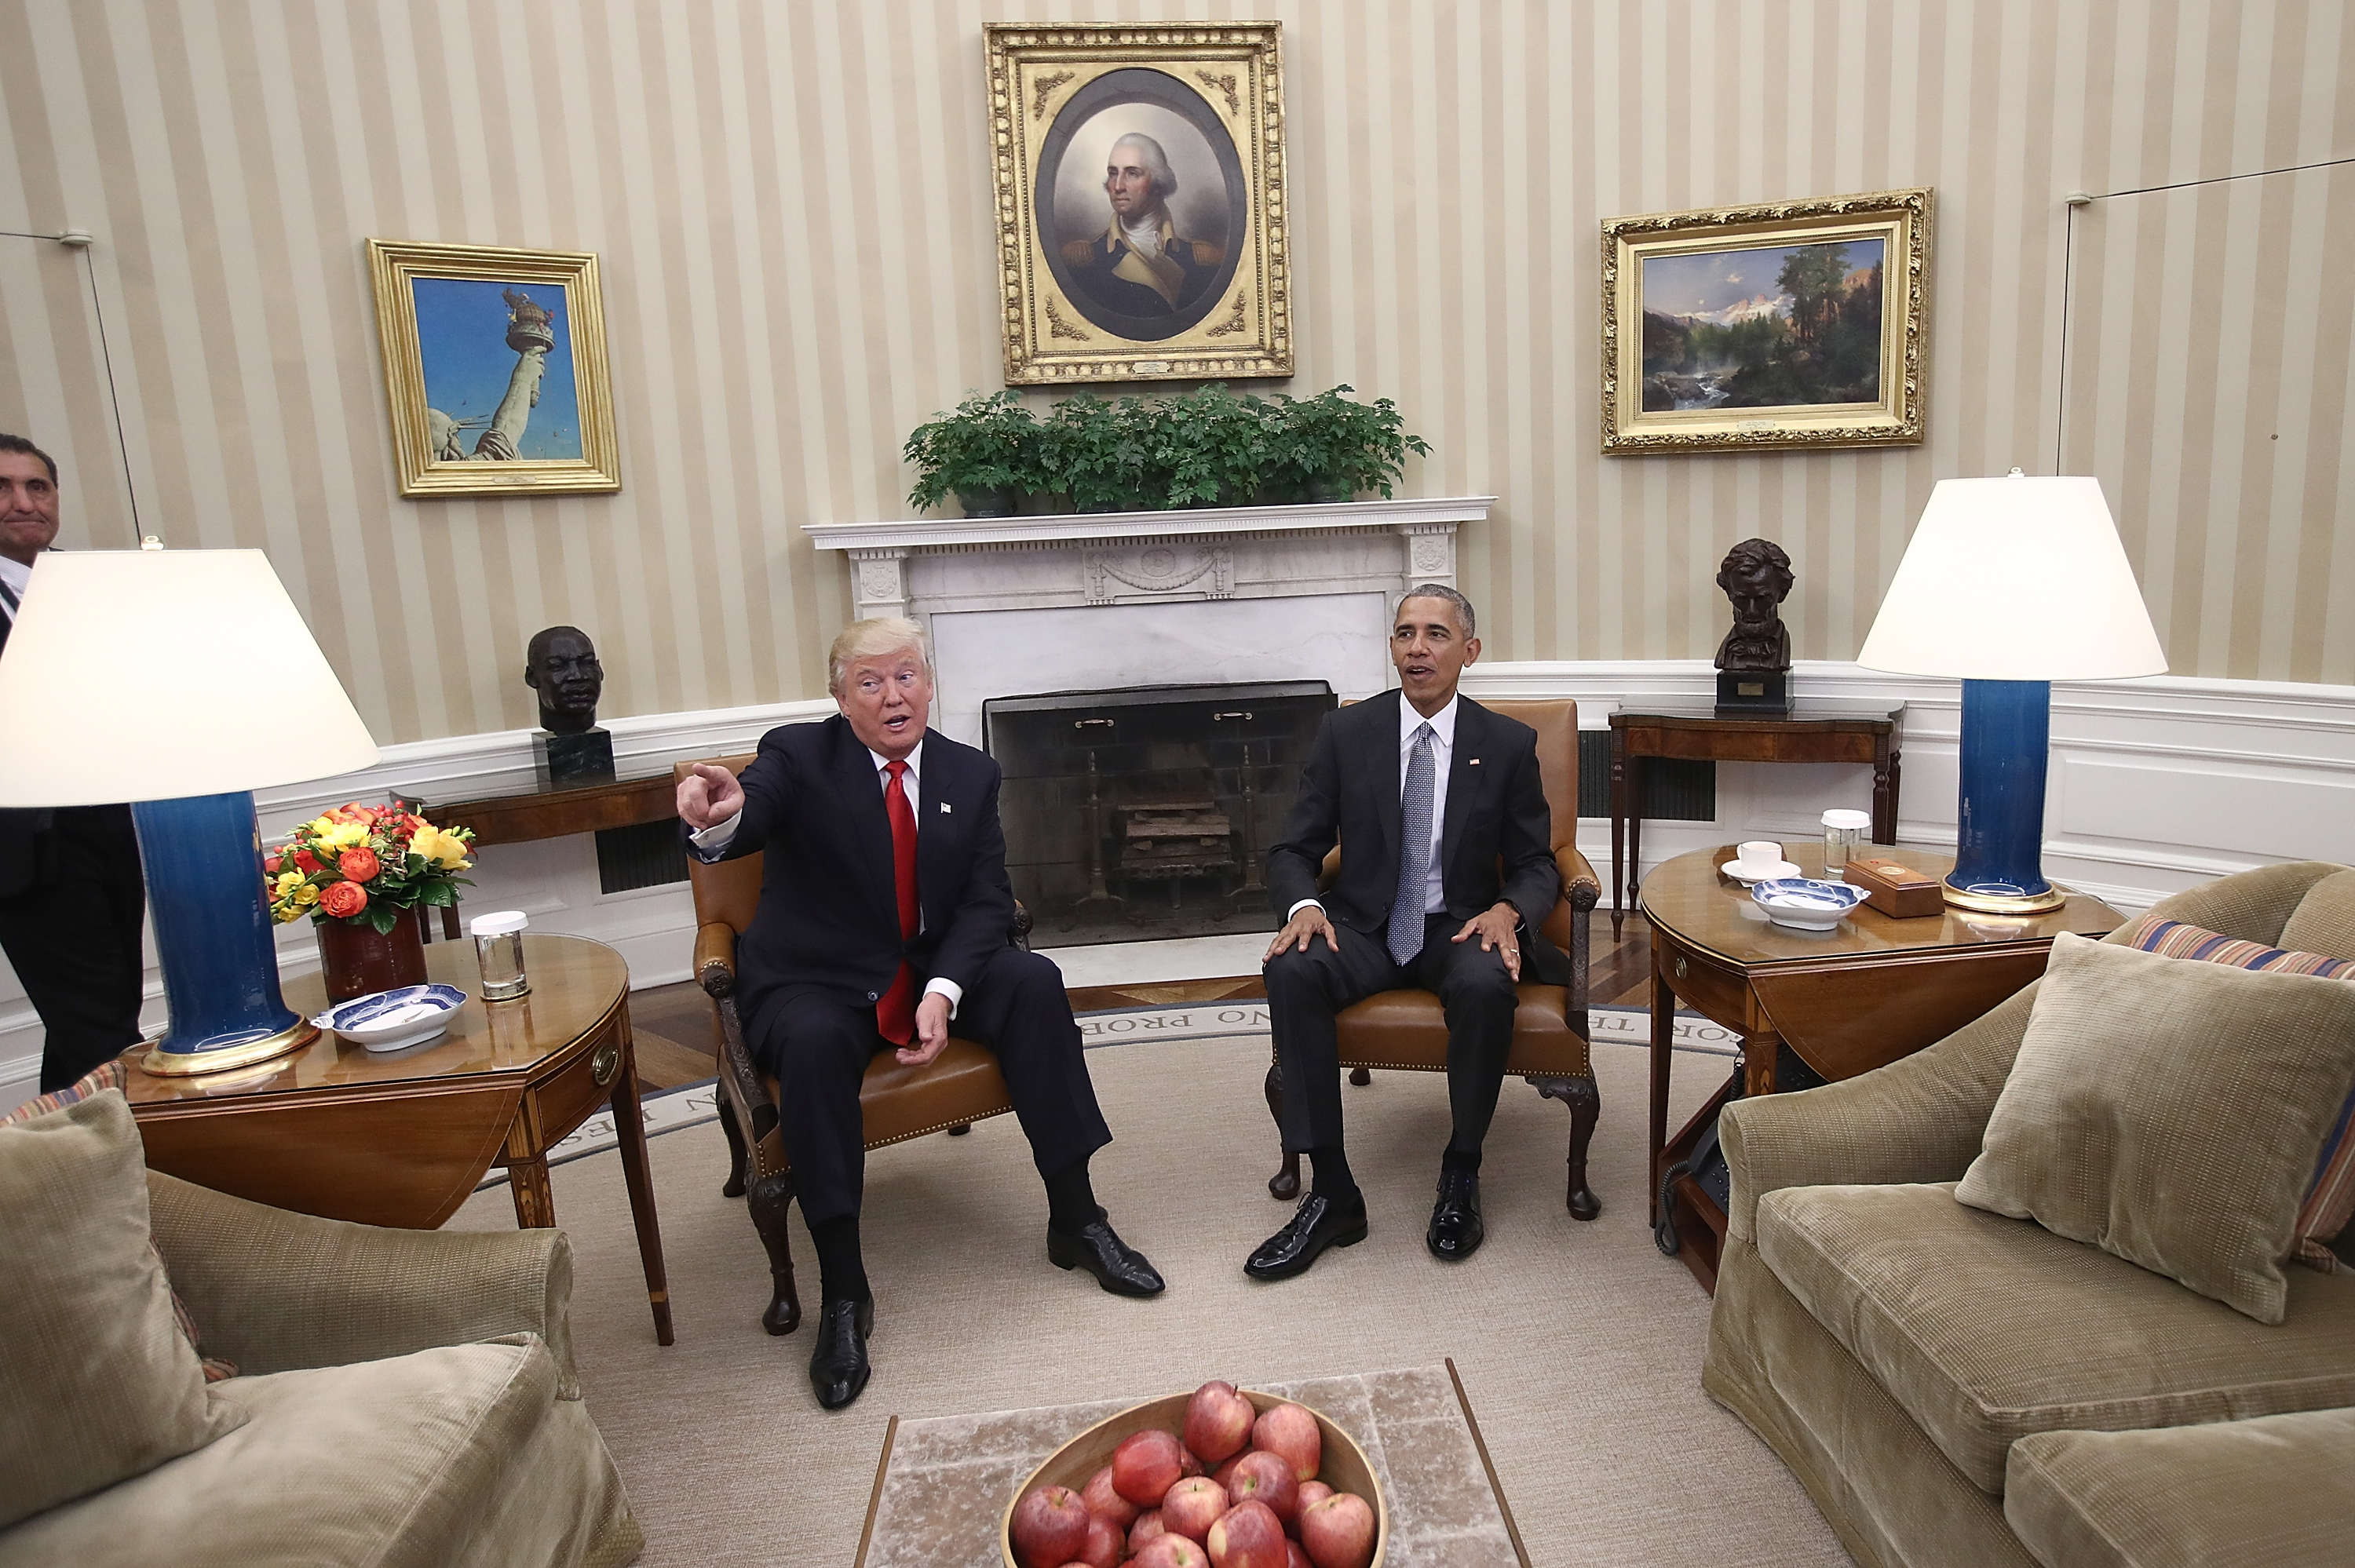 oval office chair folding lucite chairs trump or obama who decorated the better